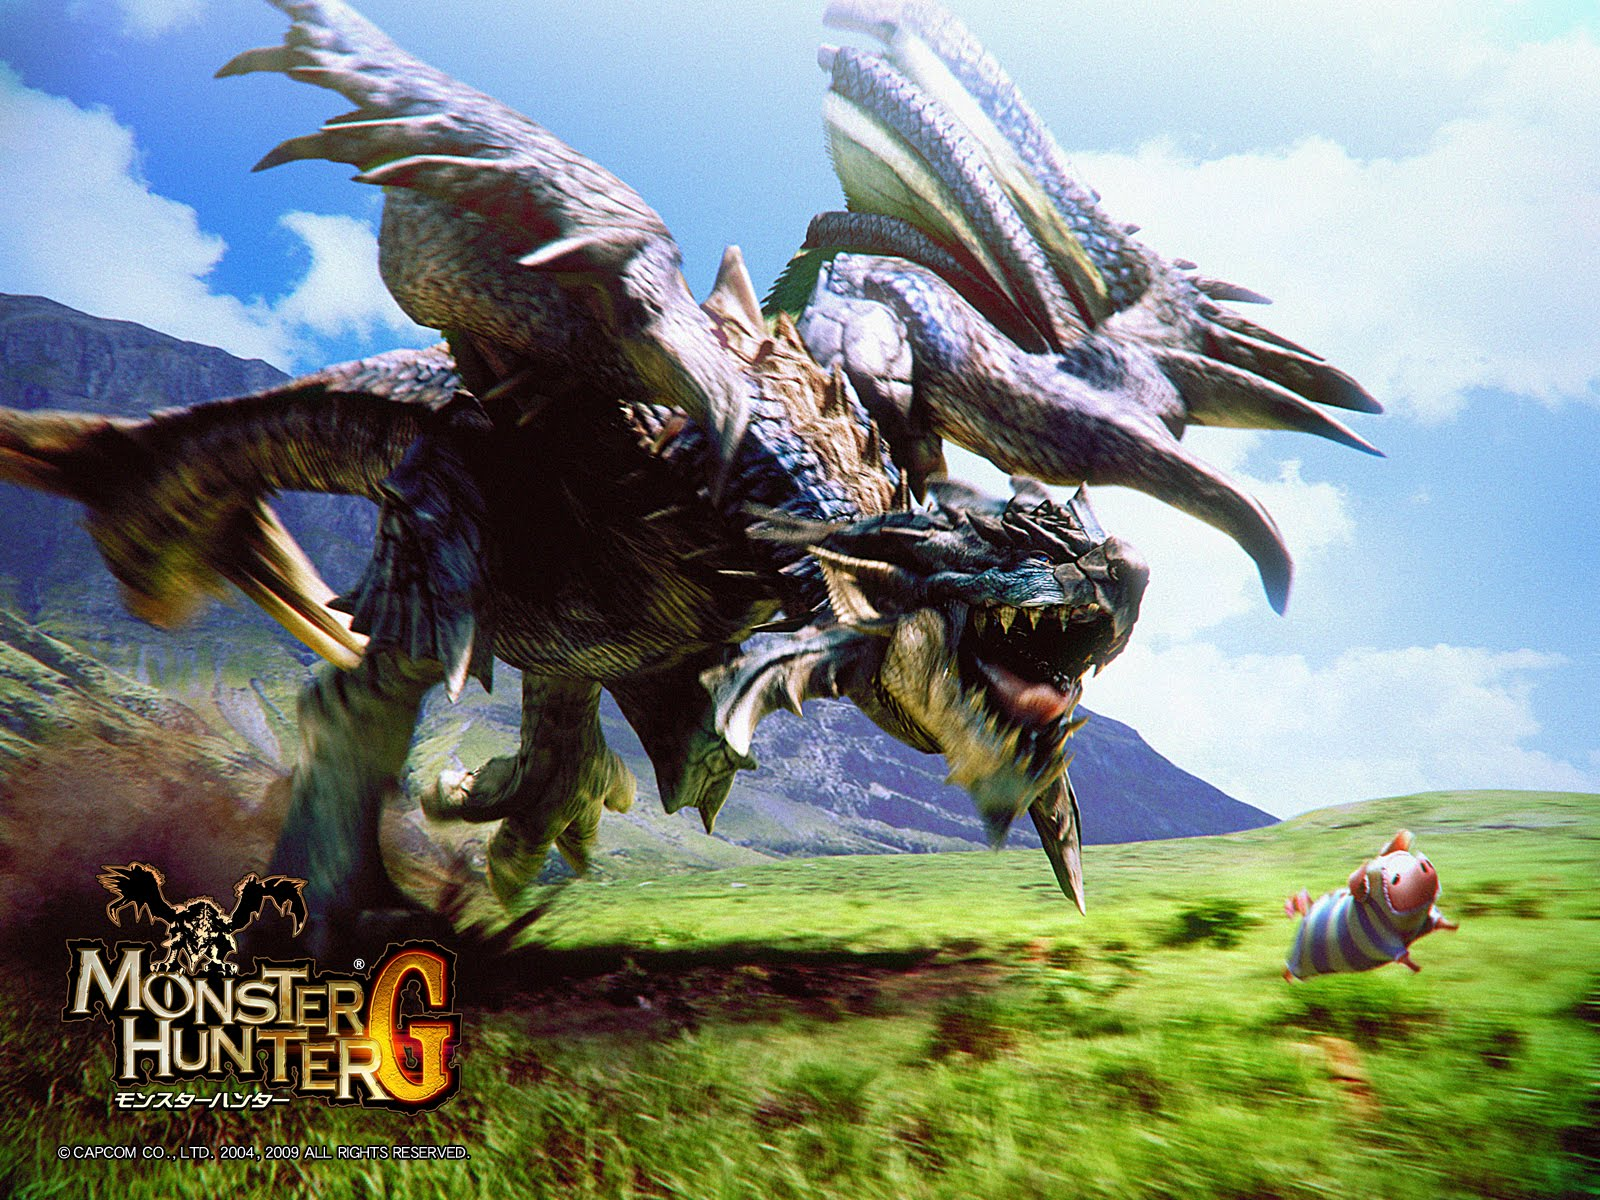 Monster Hunter HD & Widescreen Wallpaper 0.701365382470567